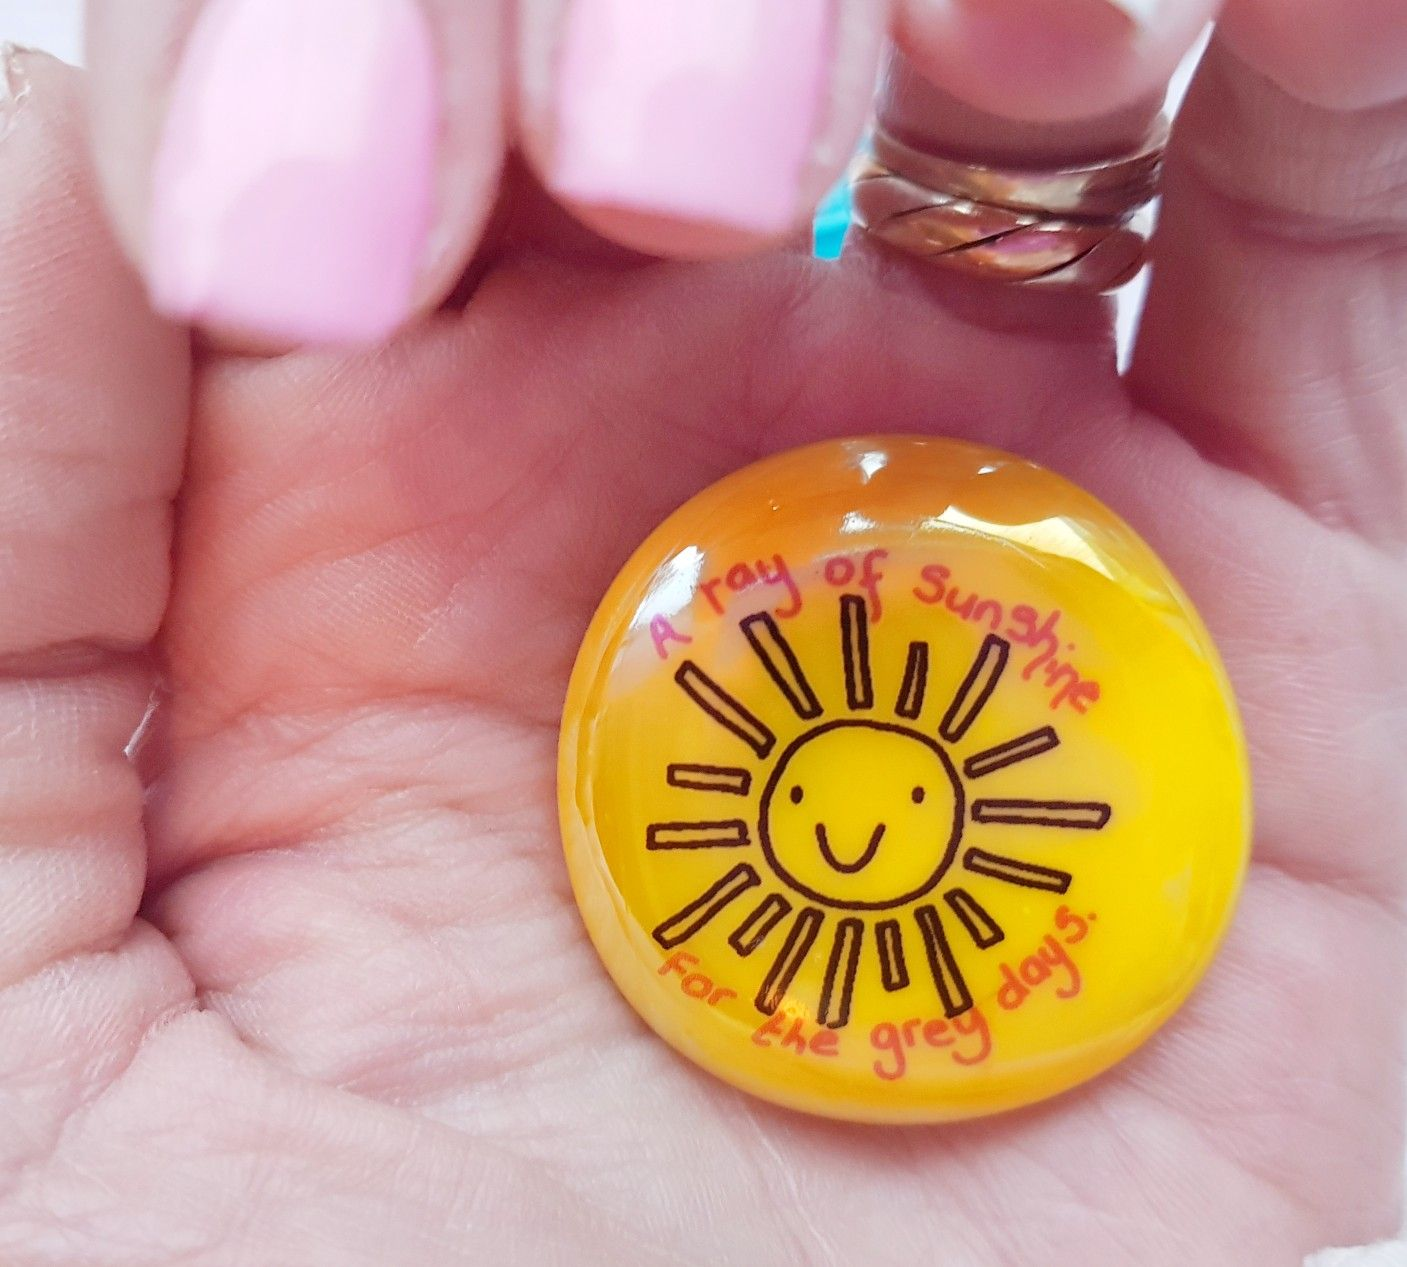 Pin on Mental health / Well Being / Positivity/ Self Care